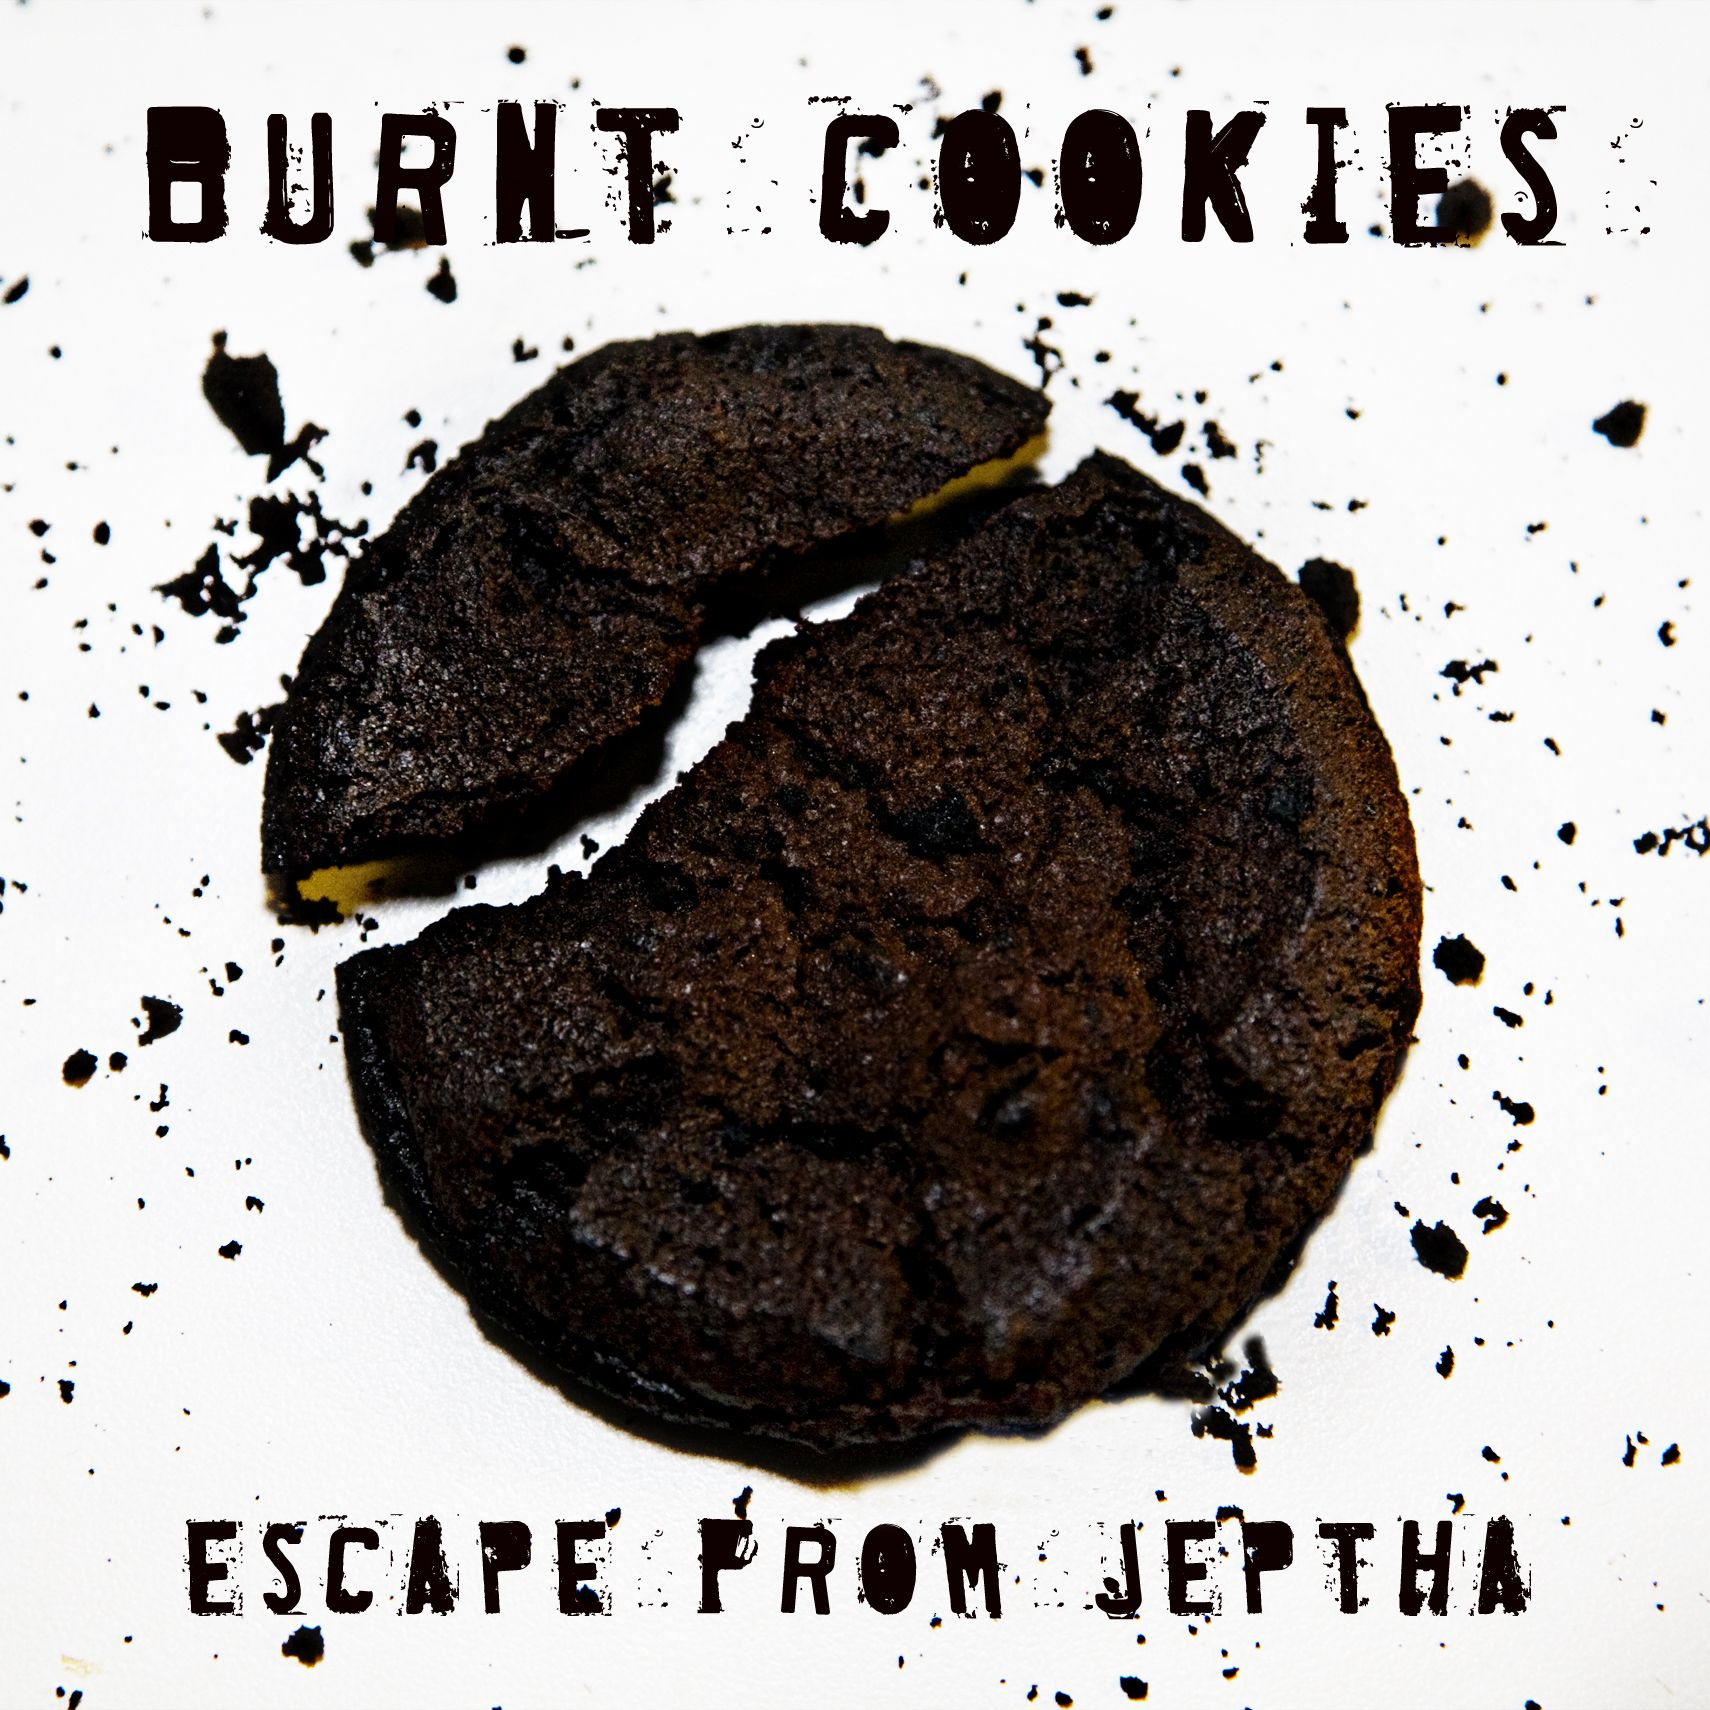 Check out Burnt Cookies on ReverbNation